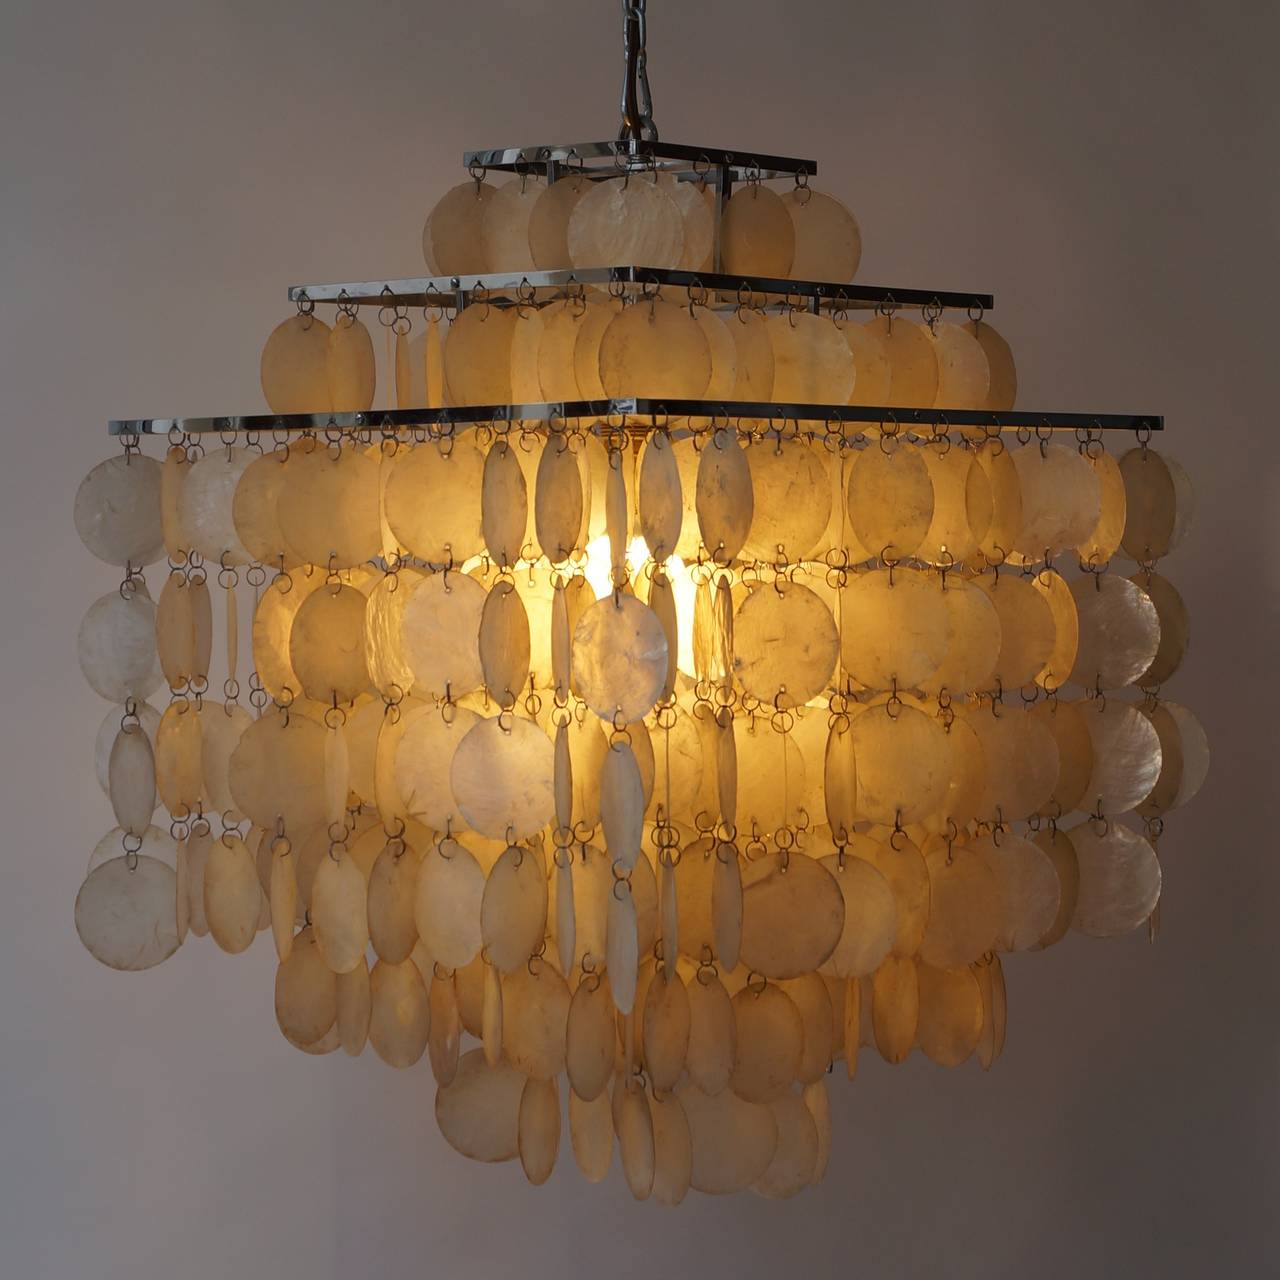 capiz shell chandelier by verner panton 2 - Capiz Shell Chandelier